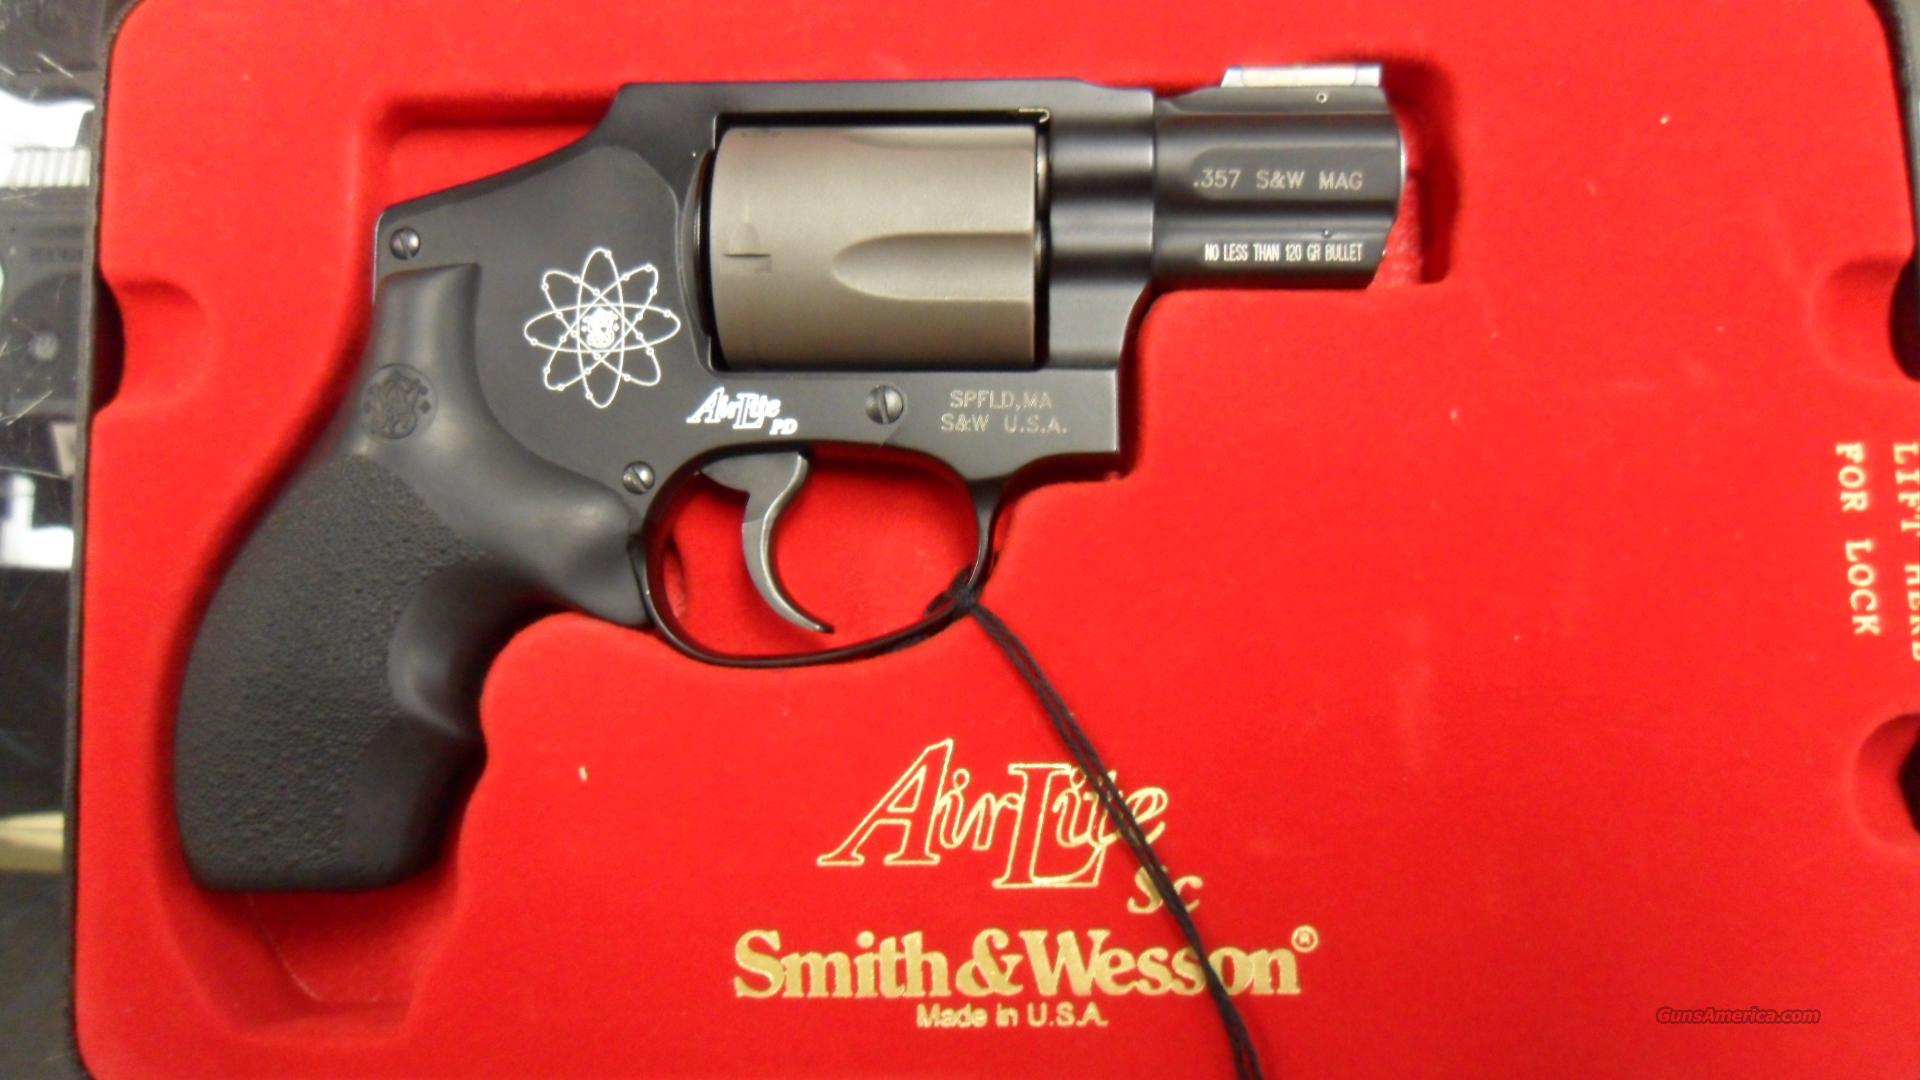 Smith & Wesson AirLite 340 PD 357mag  Guns > Pistols > Smith & Wesson Revolvers > Pocket Pistols